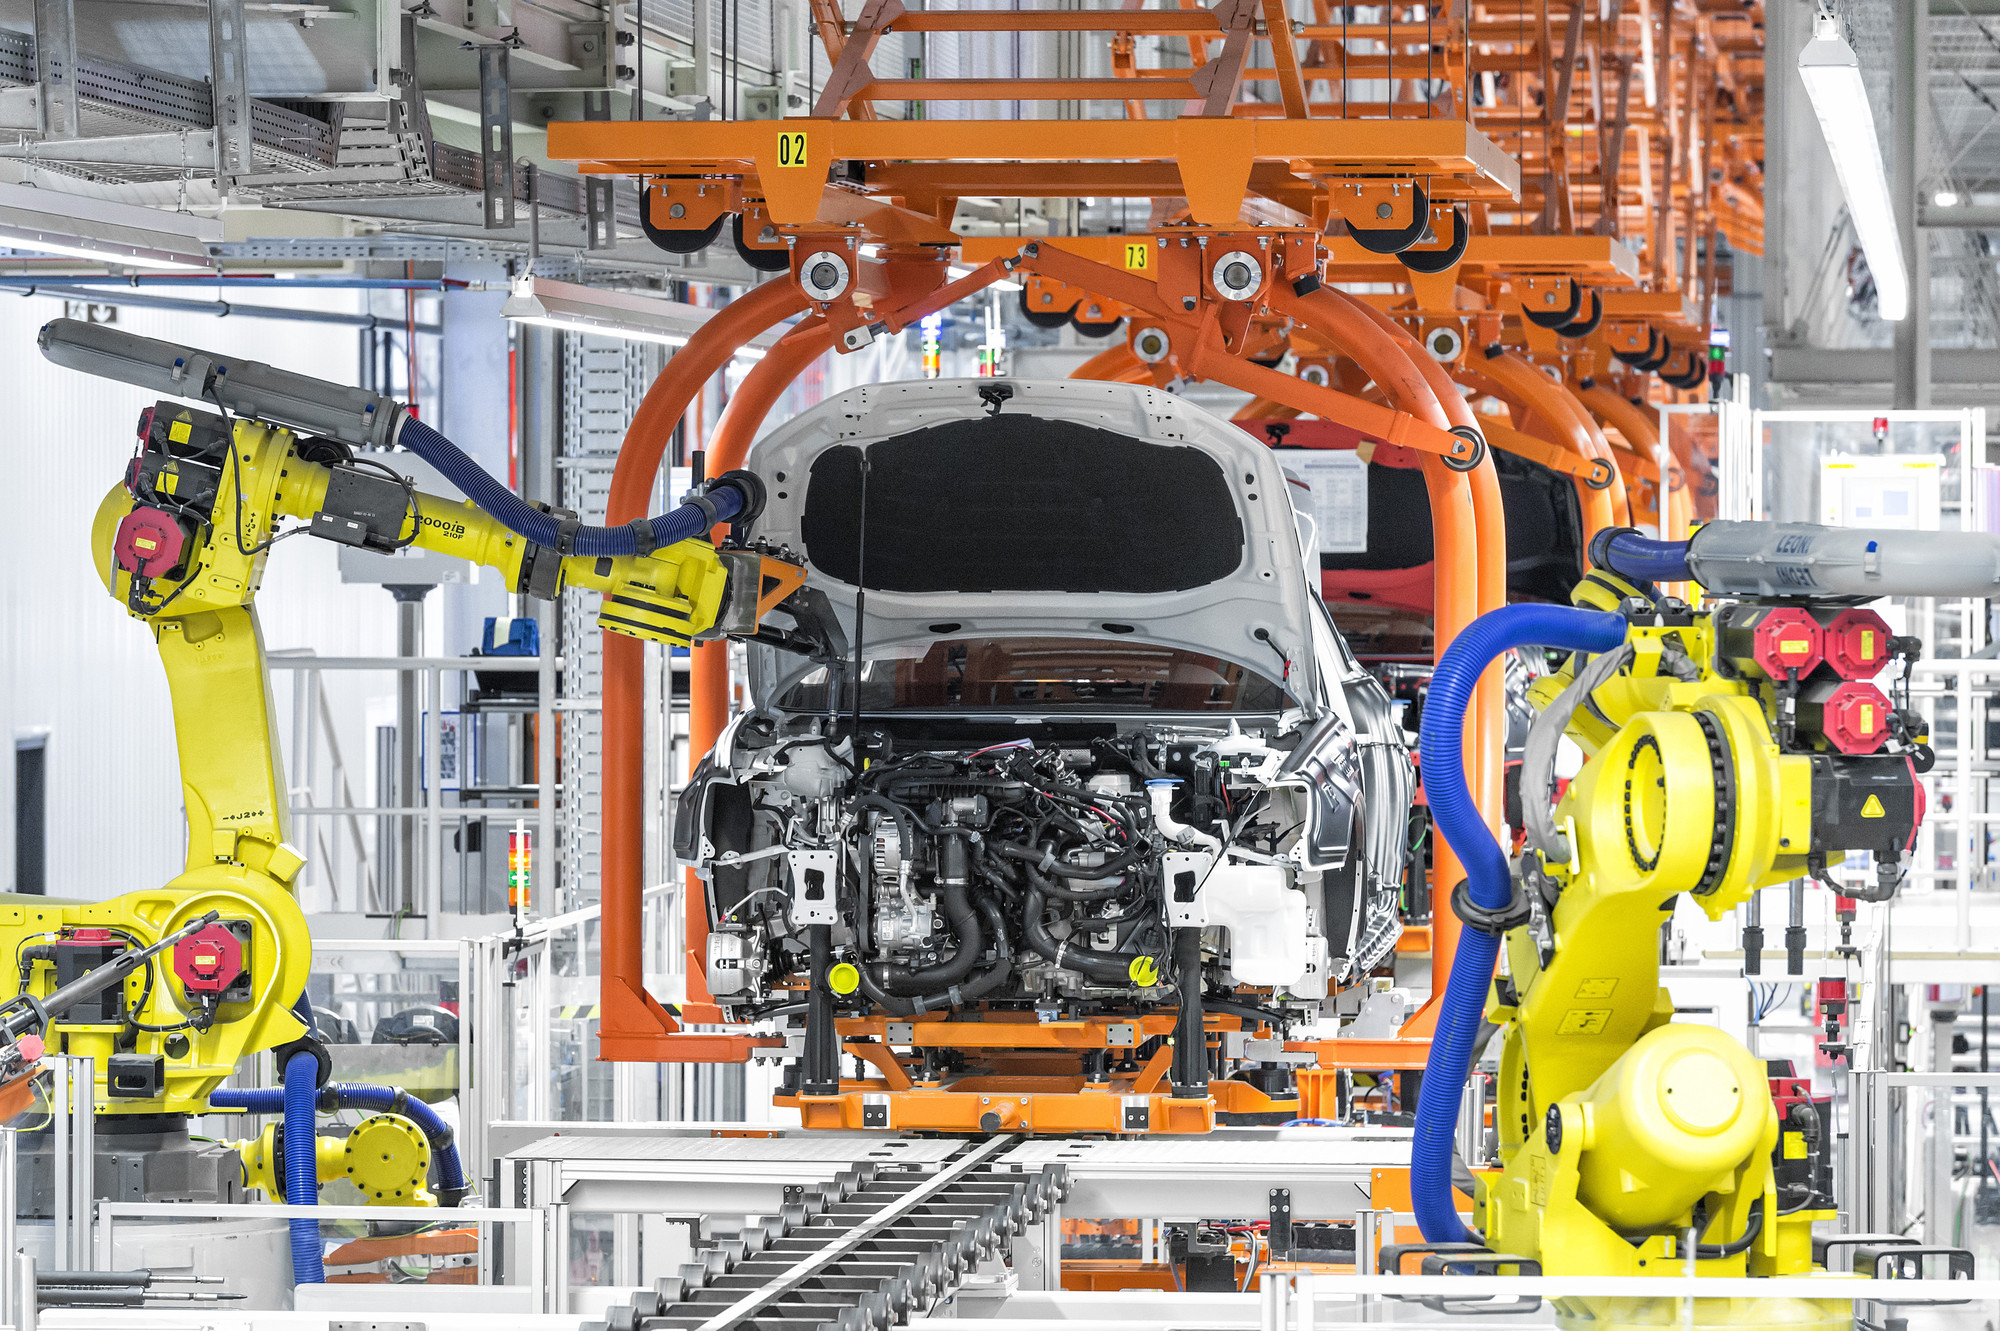 Robots, Cars and Architecture, Robots assembling an Audi A3 © Courtesy of Audi